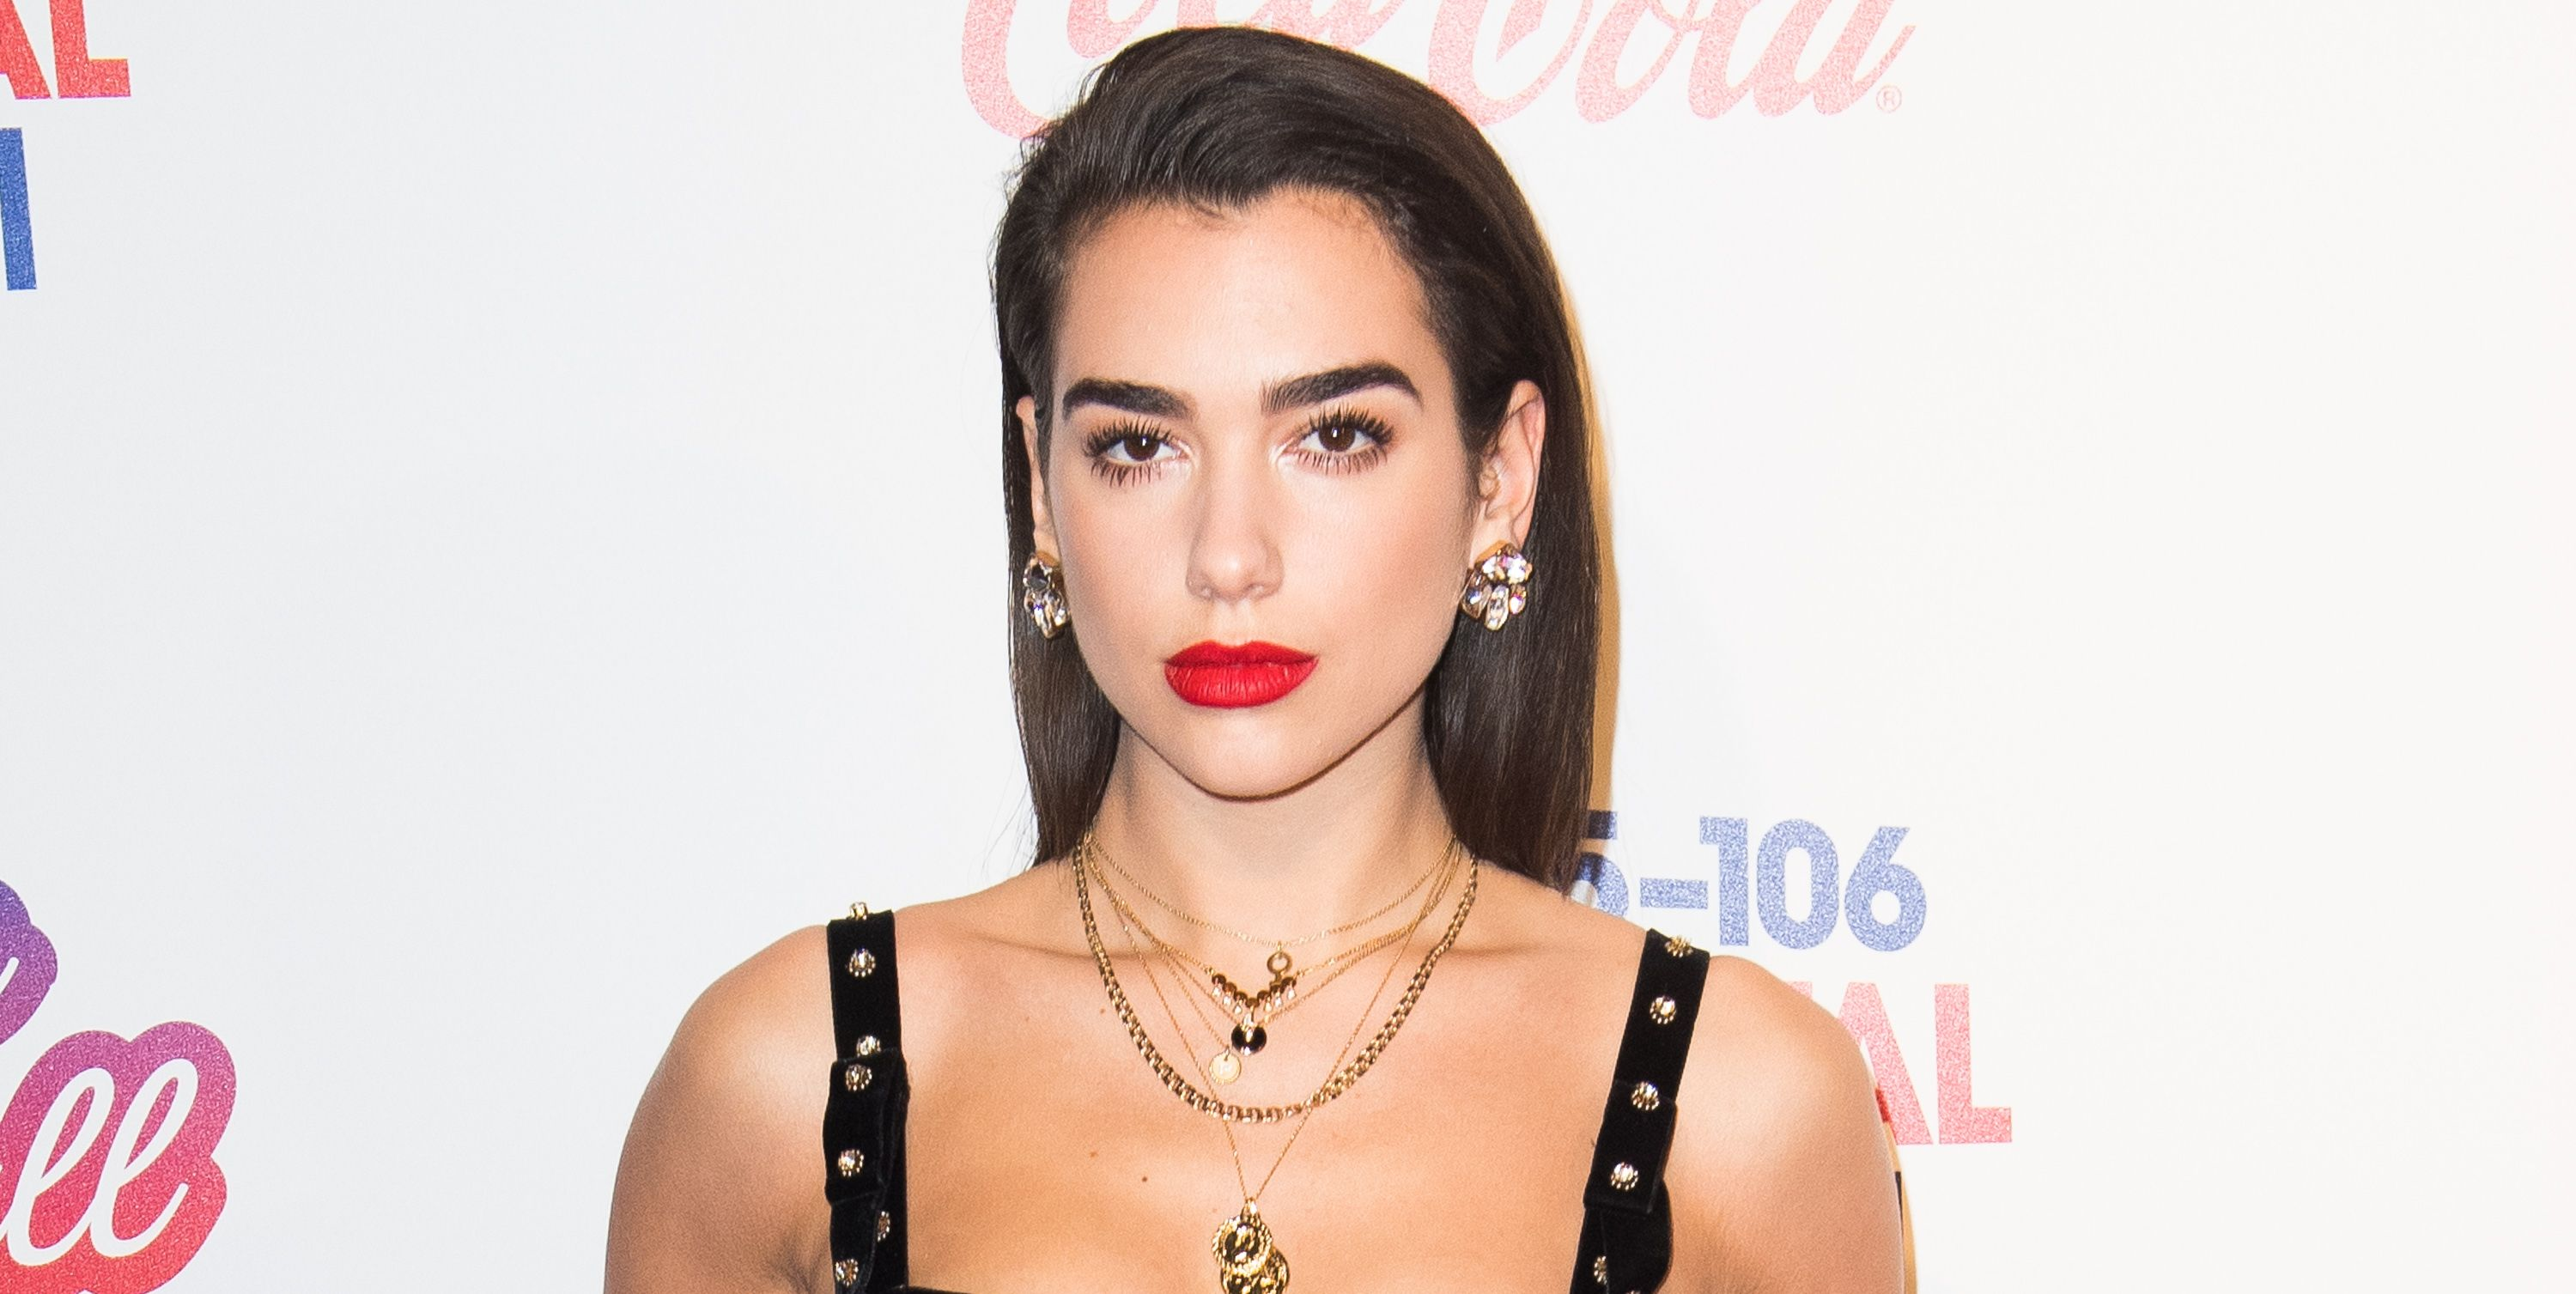 Dua Lipa attends the Capital FM Jingle Bell Ball with Coca-Cola at The O2 Arena on December 9, 2017 in London